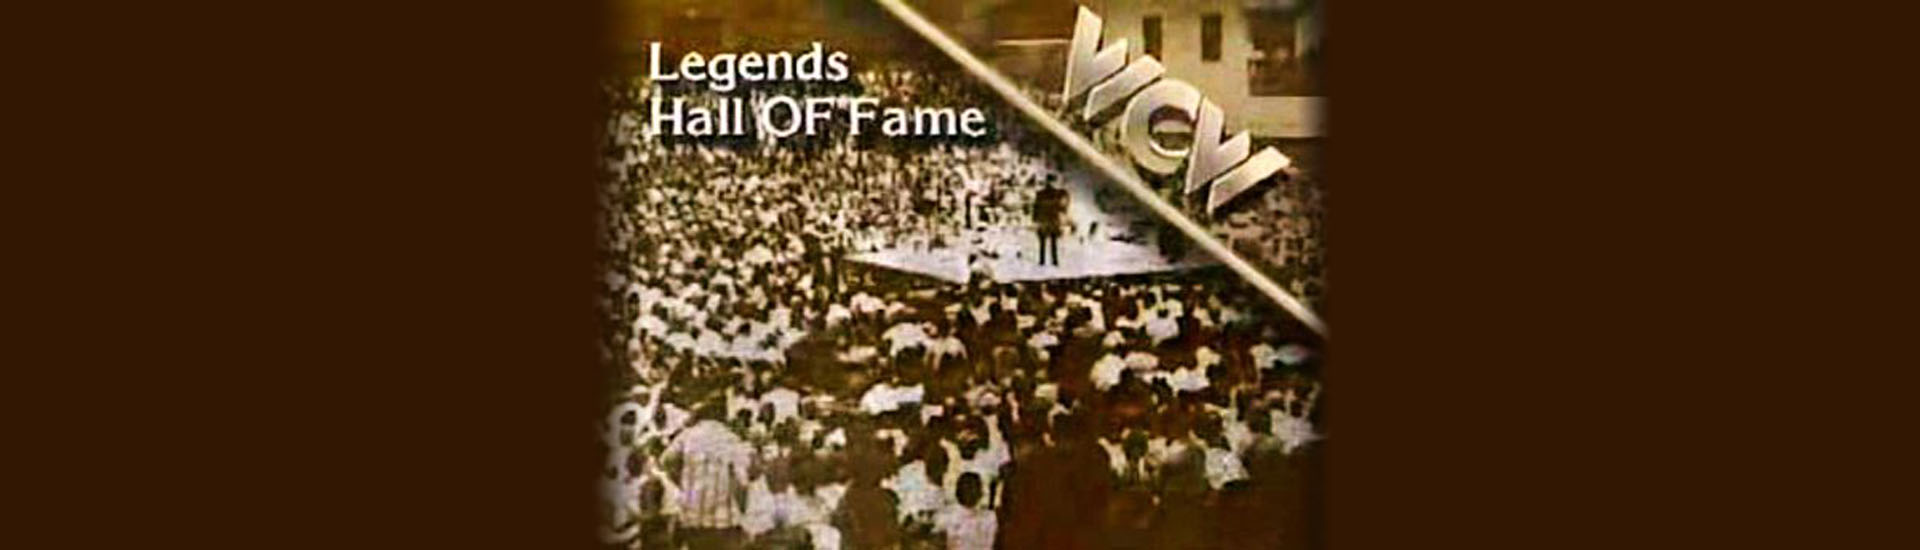 WCW hall of fame full event